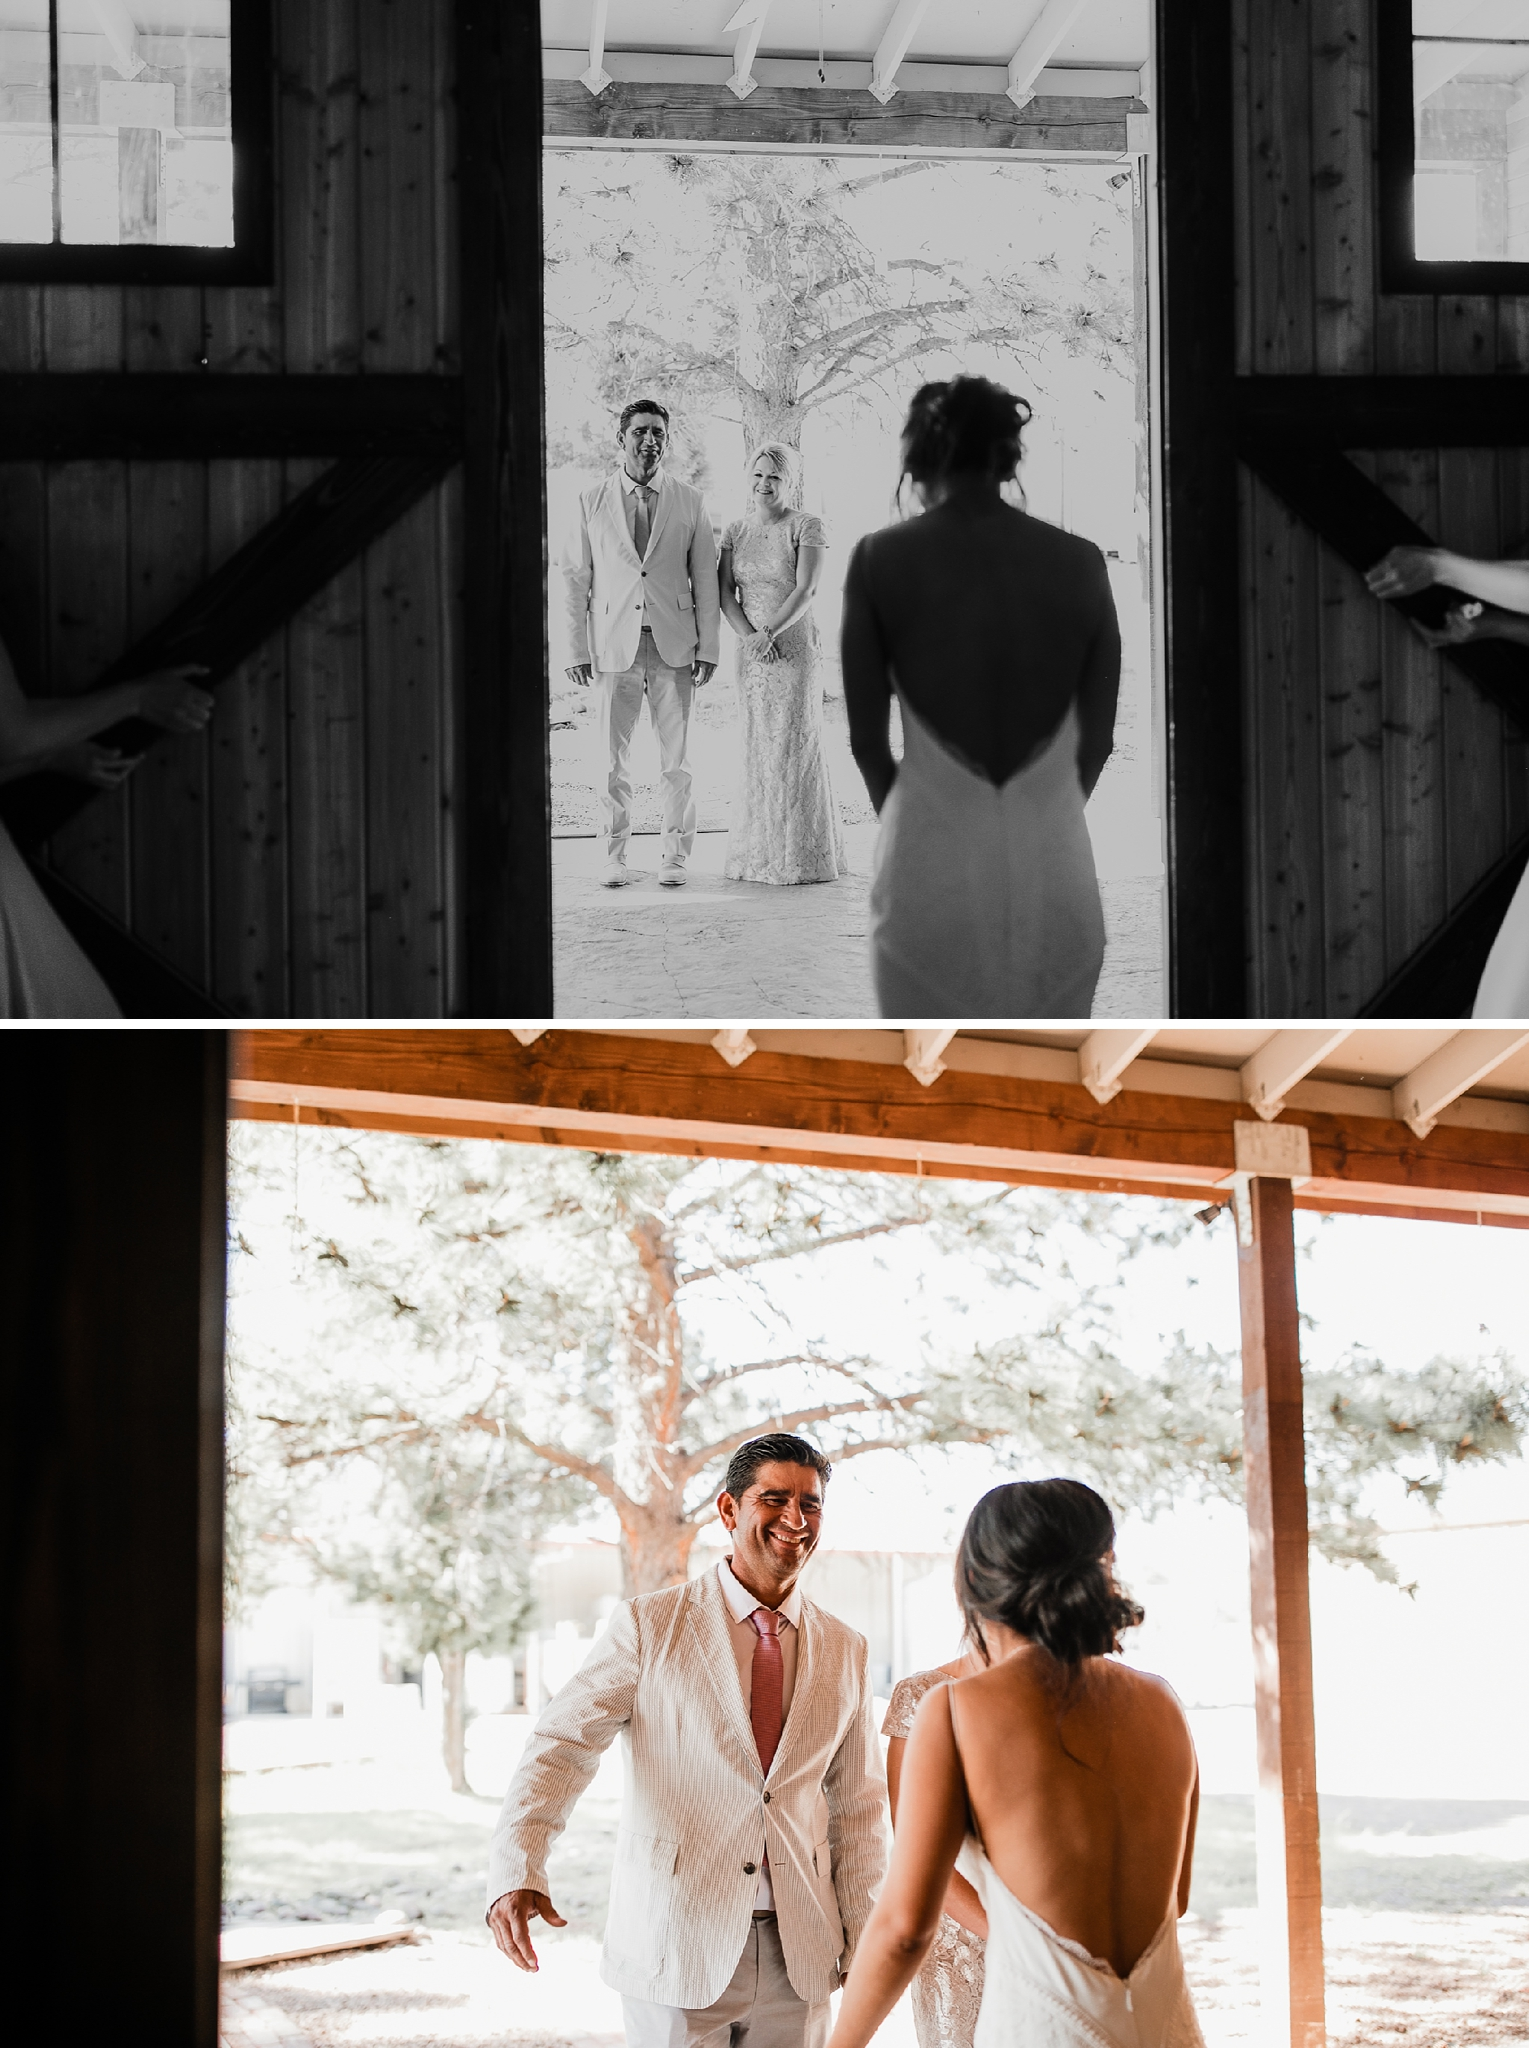 Alicia+lucia+photography+-+albuquerque+wedding+photographer+-+santa+fe+wedding+photography+-+new+mexico+wedding+photographer+-+new+mexico+wedding+-+new+mexico+wedding+-+barn+wedding+-+enchanted+vine+barn+wedding+-+ruidoso+wedding_0062.jpg